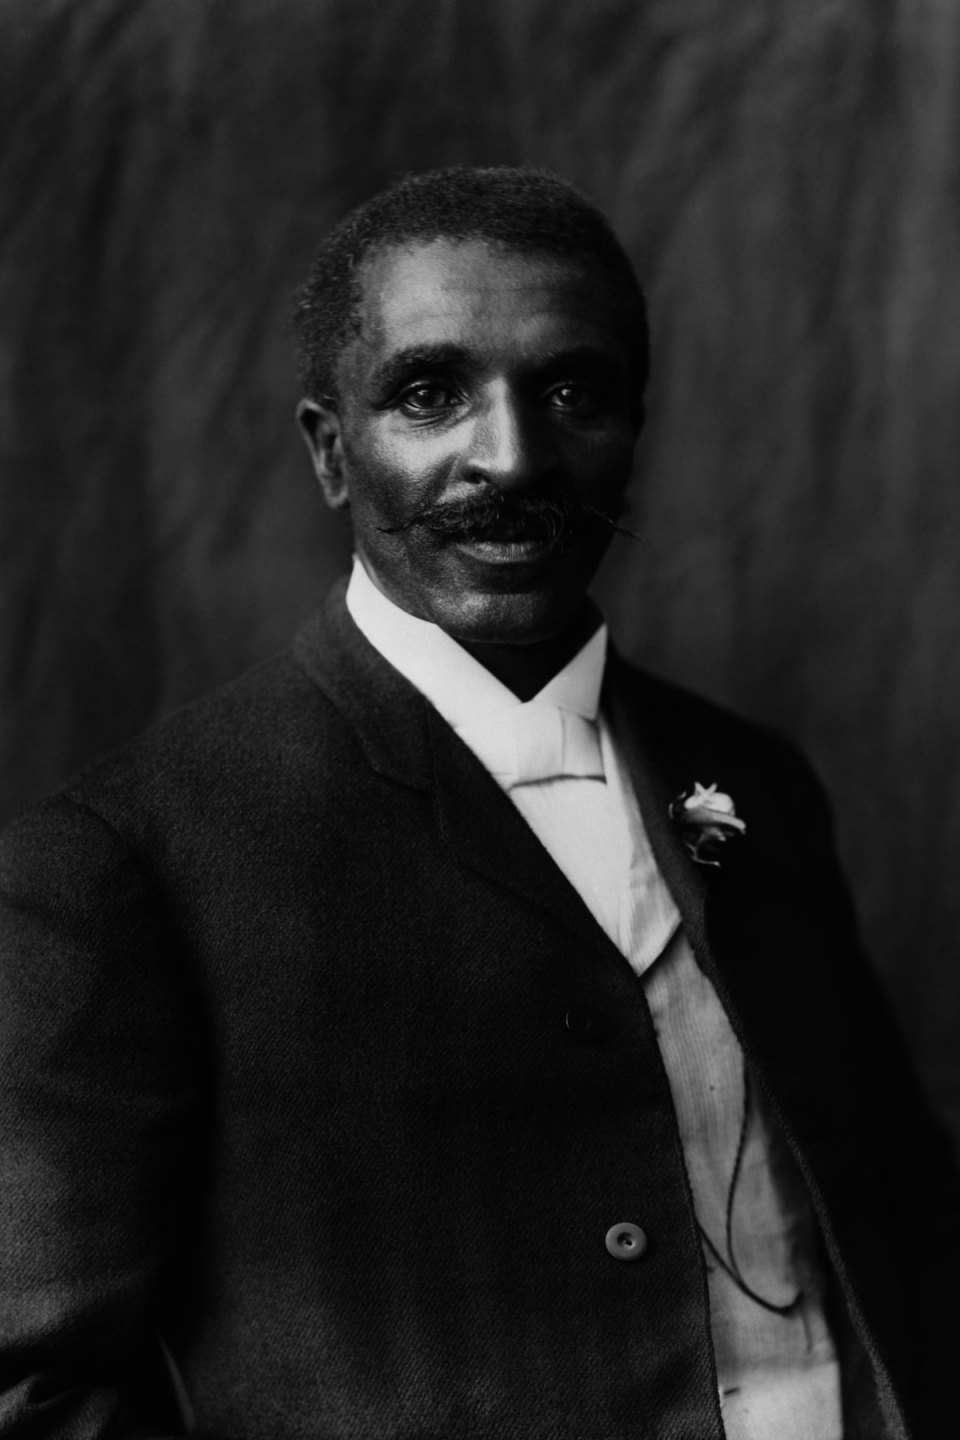 Black and white photo of George Washington Carver